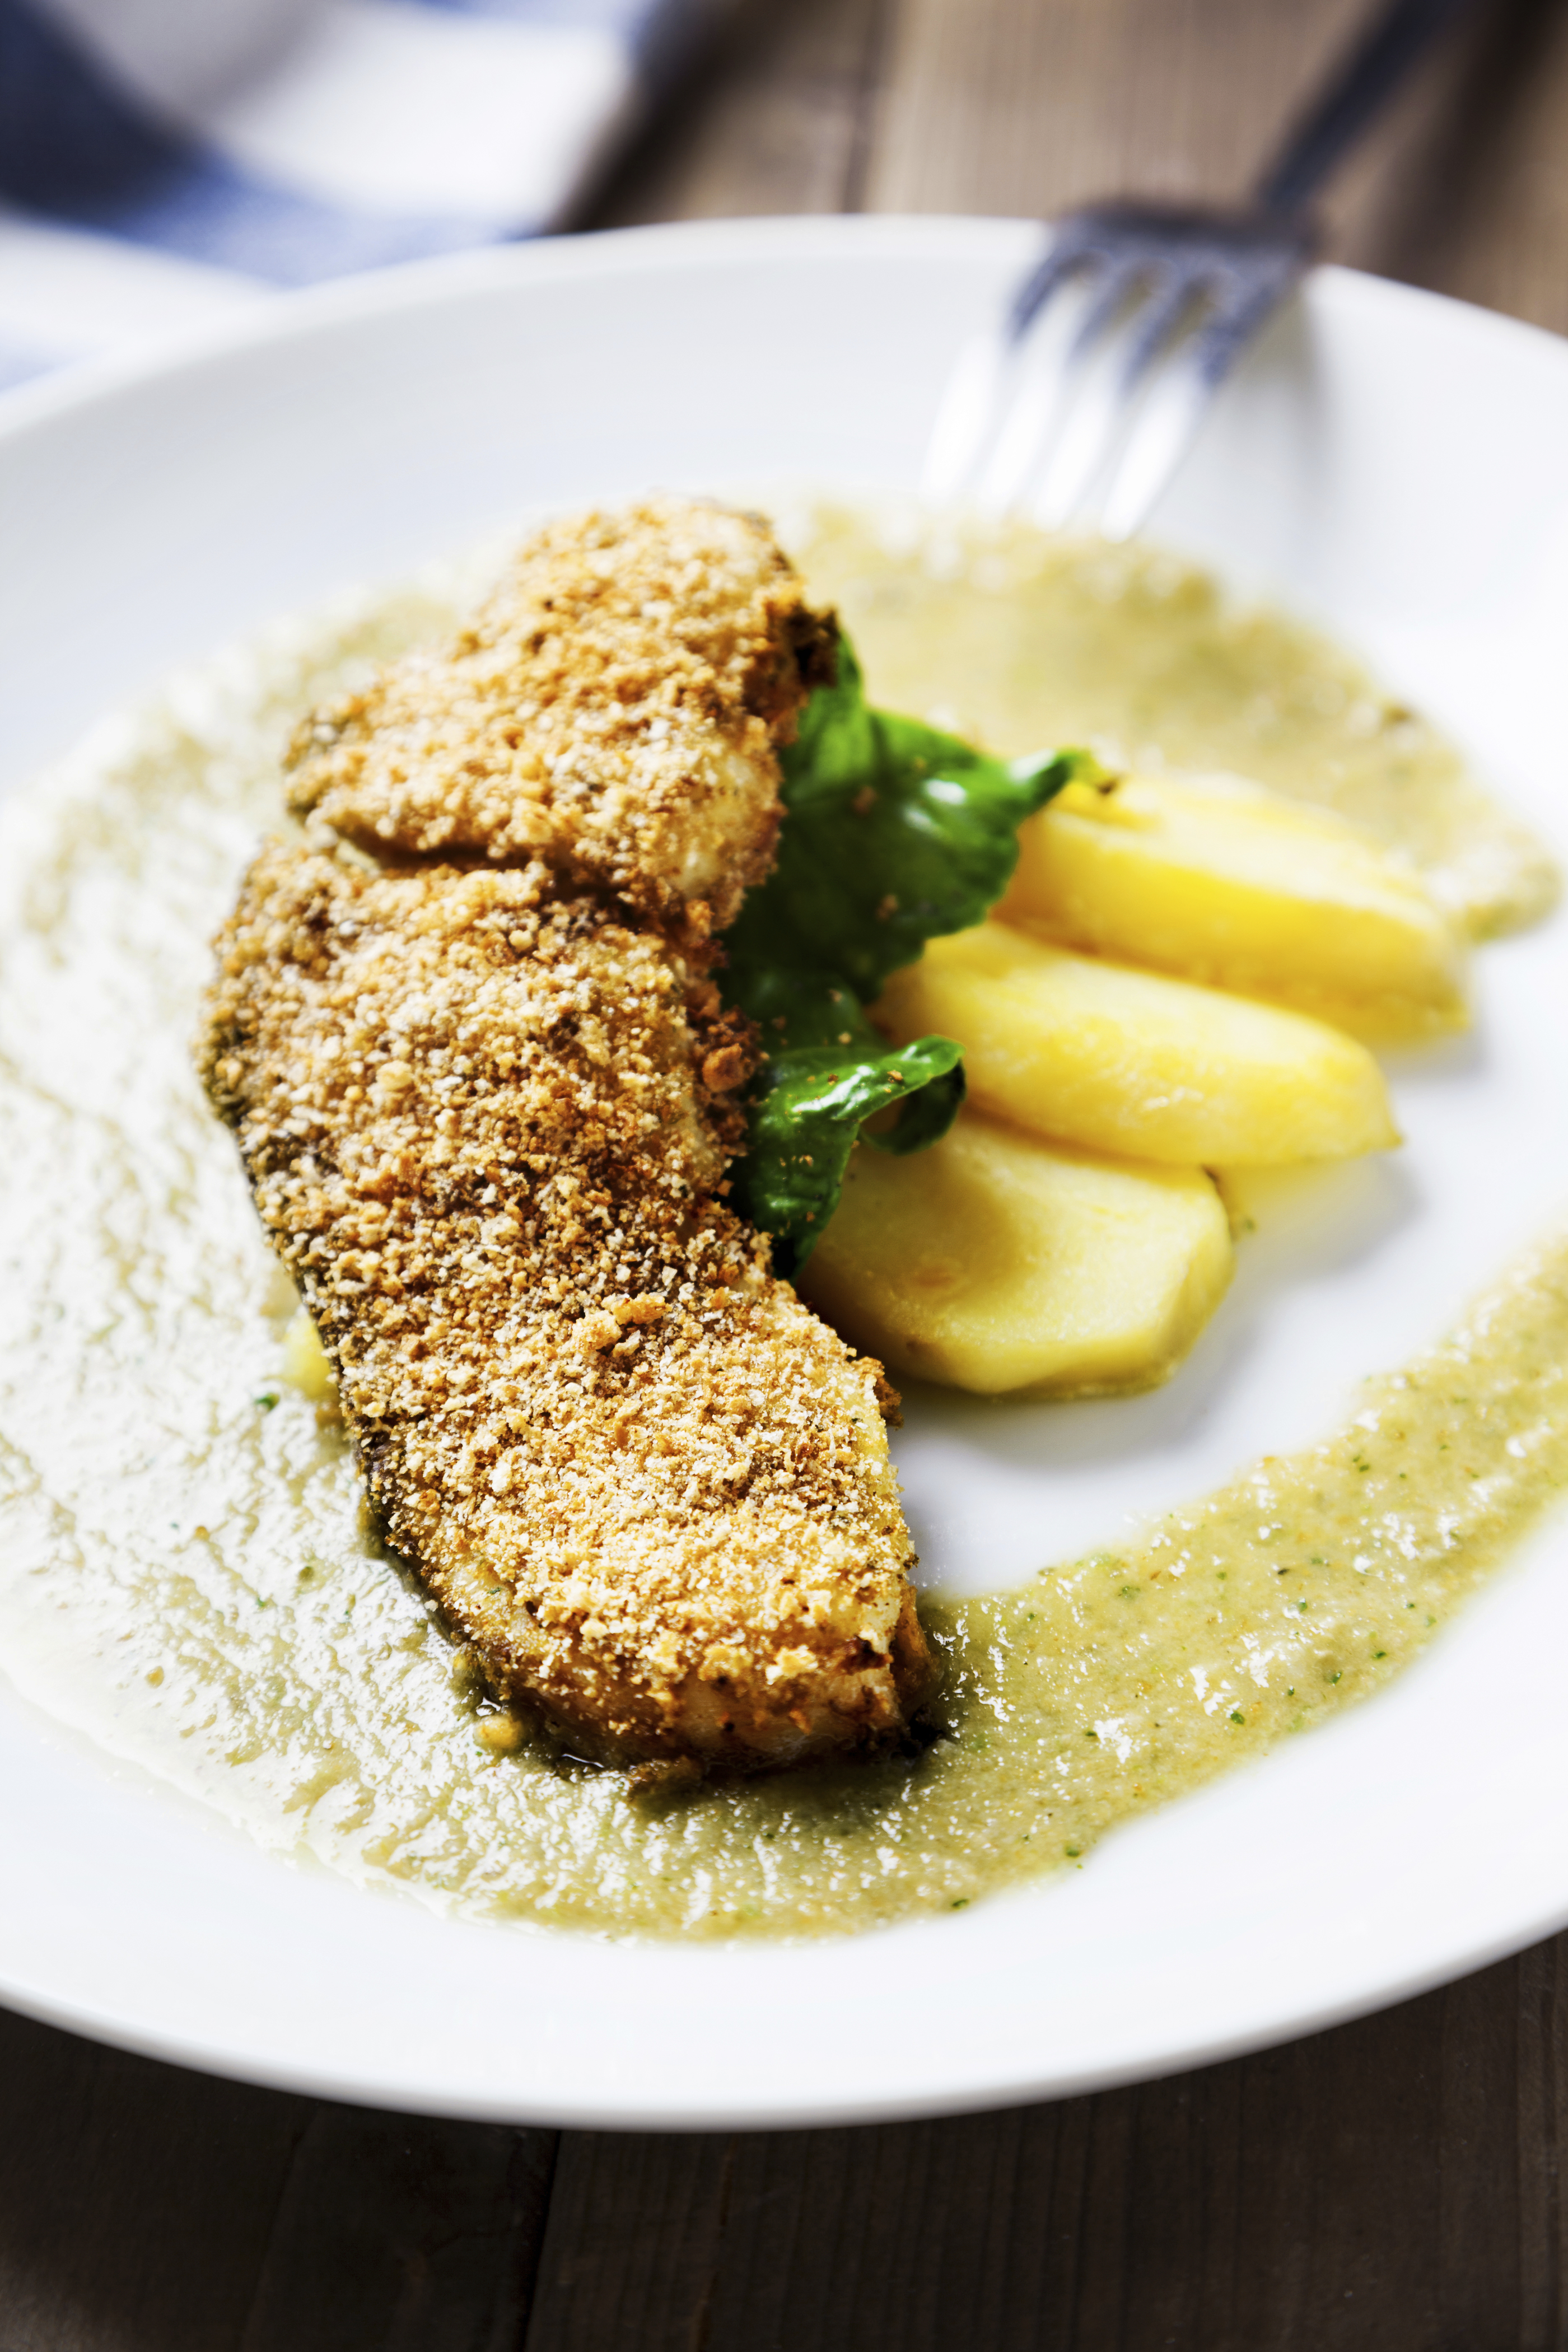 breaded swordfish in the plate served with potatoes and green sauce